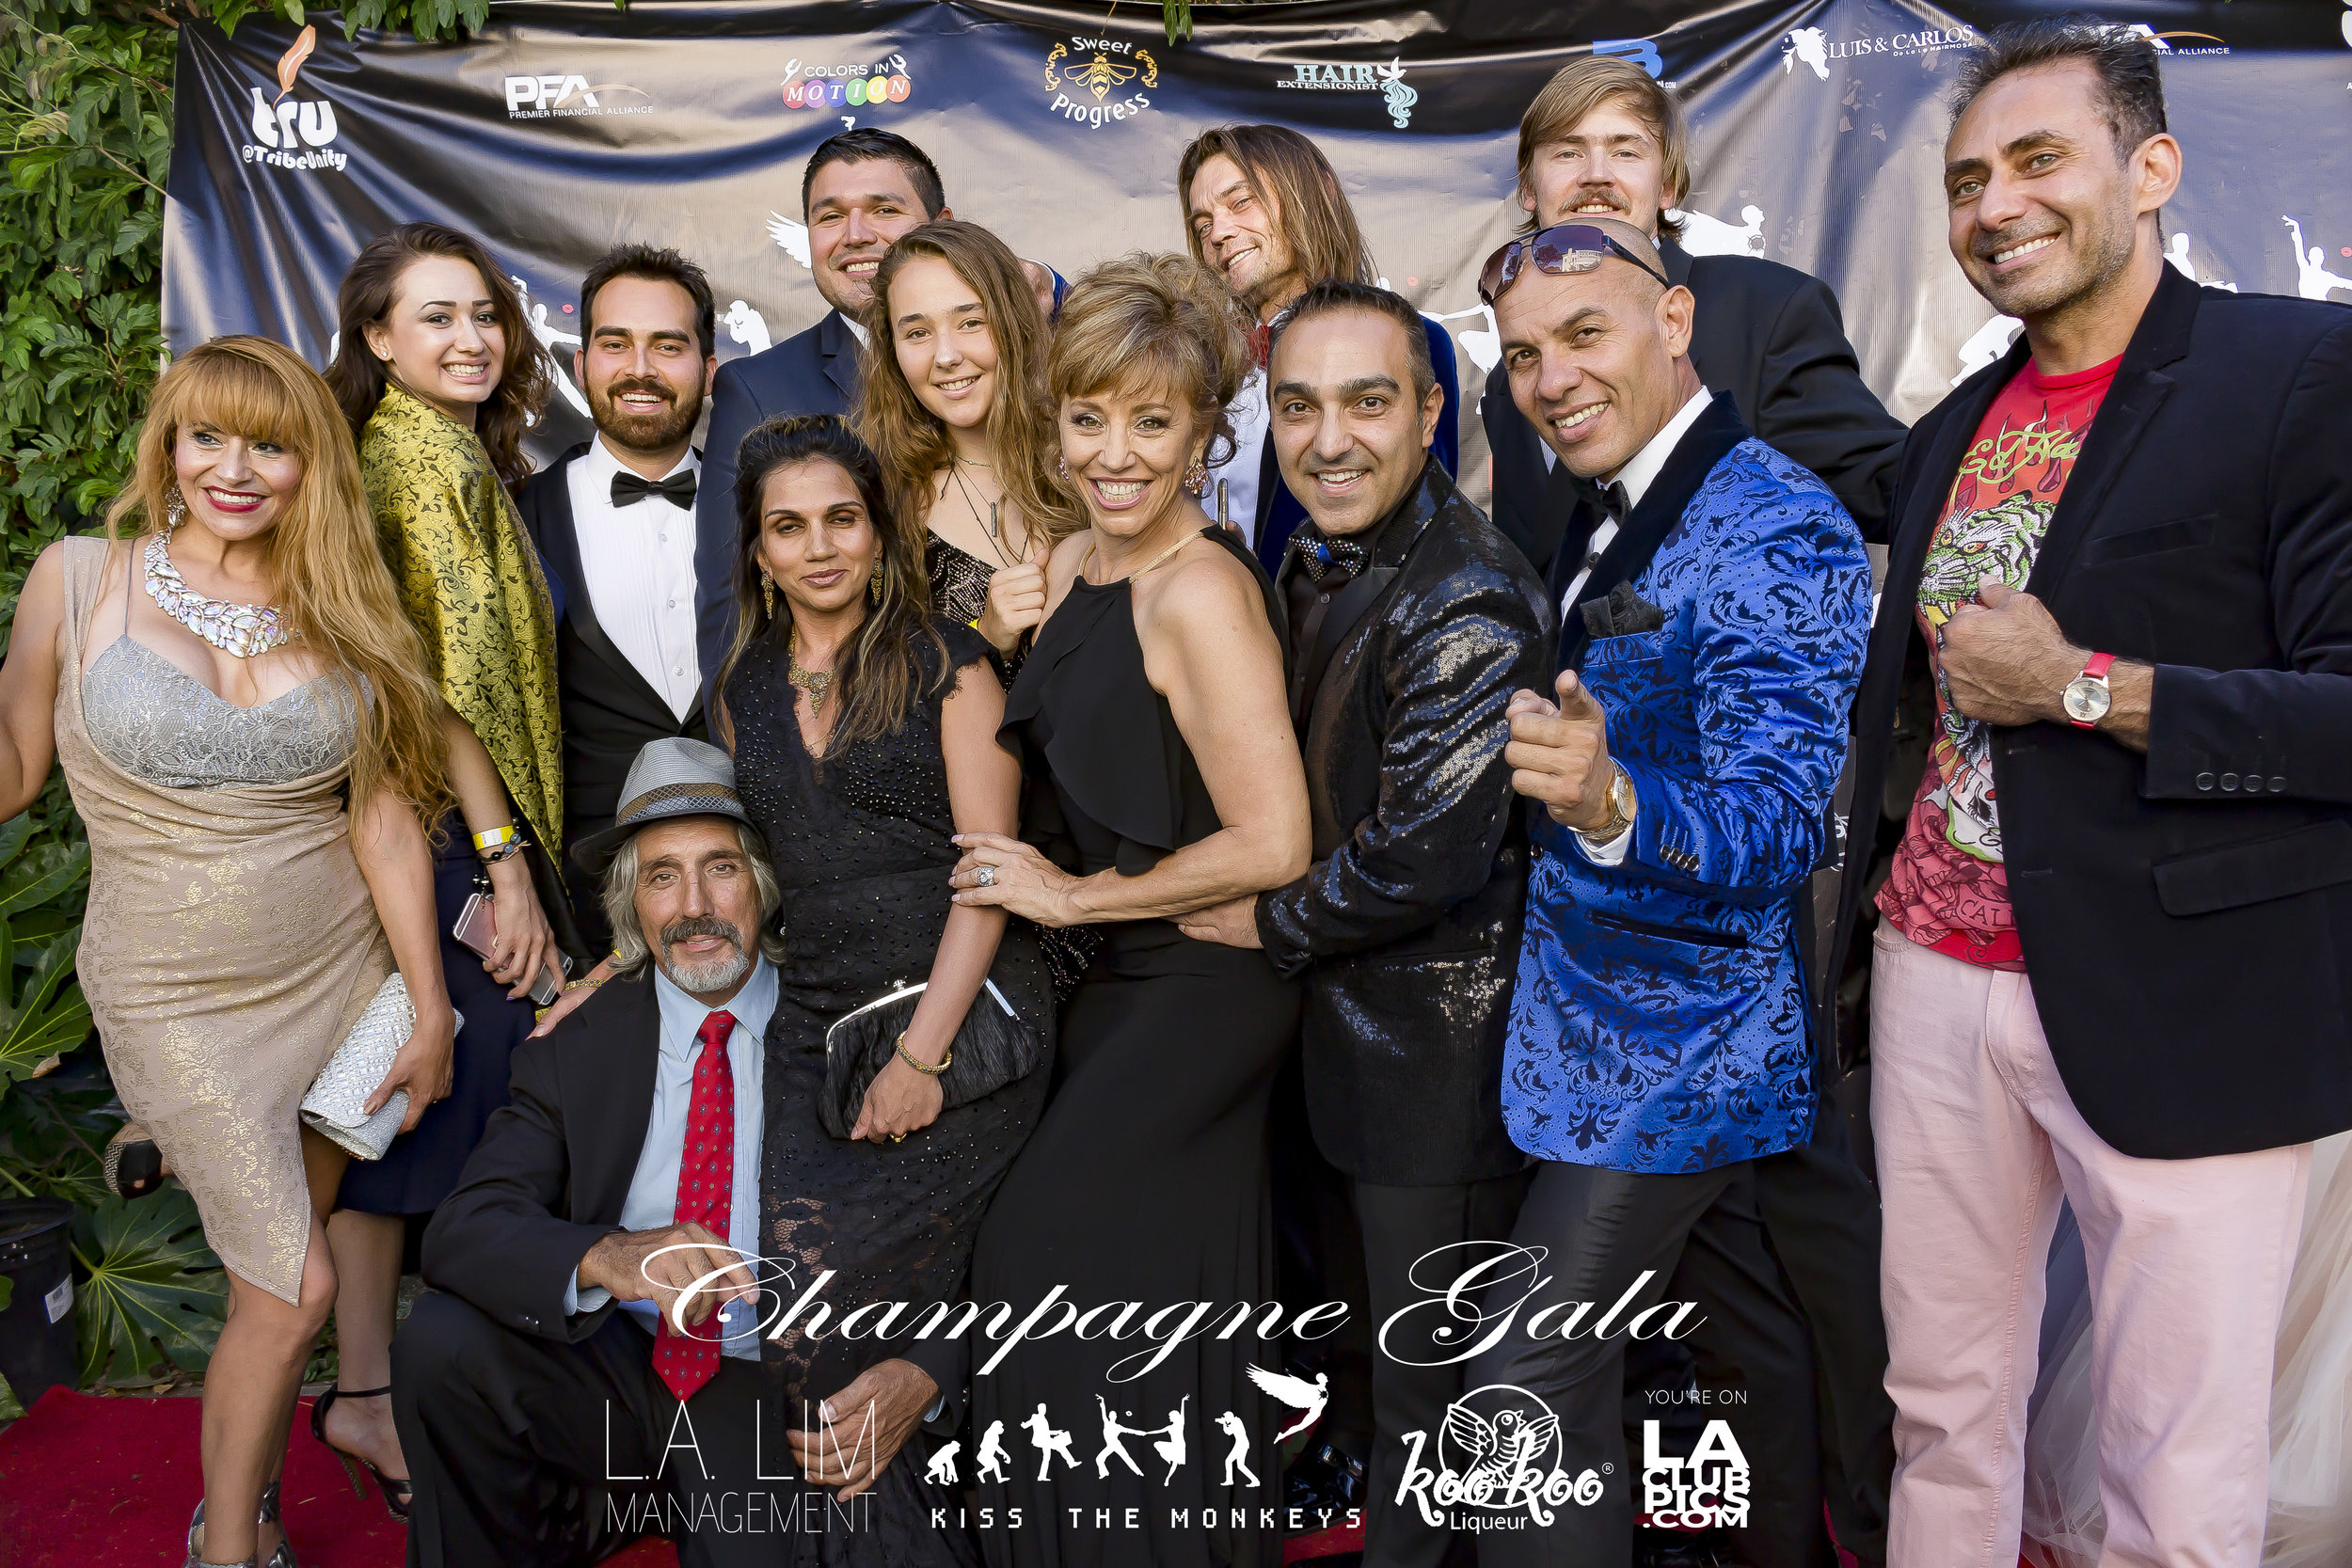 Kiss The Monkeys - Champagne Gala - 07-21-18_38.jpg